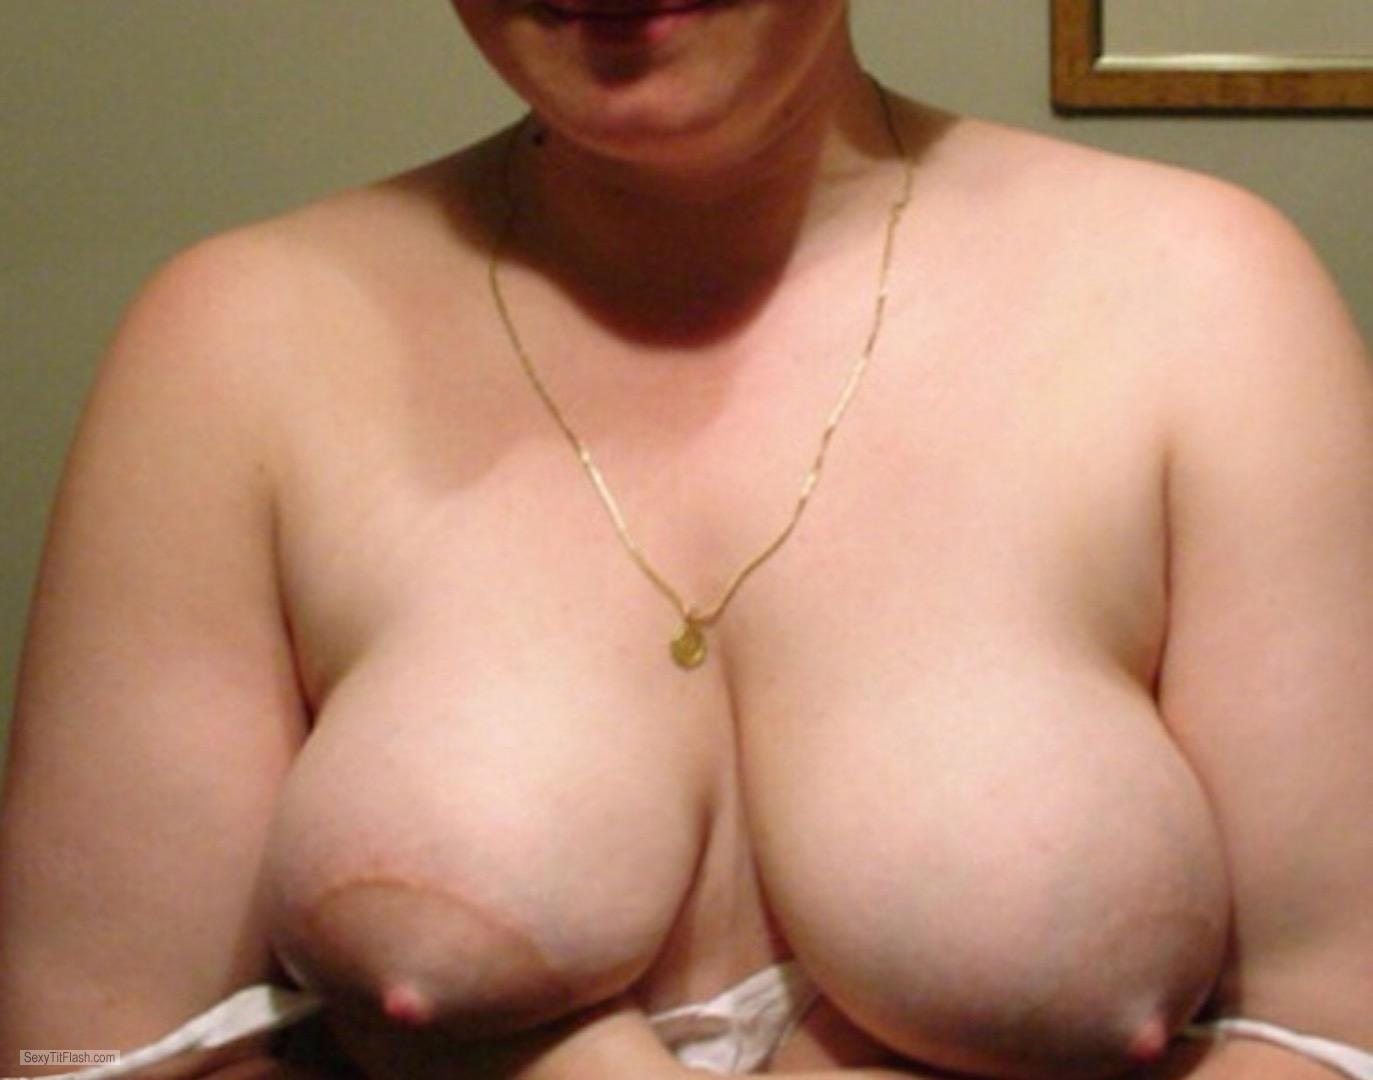 Tit Flash: My Big Tits - Susanhyz from United Kingdom